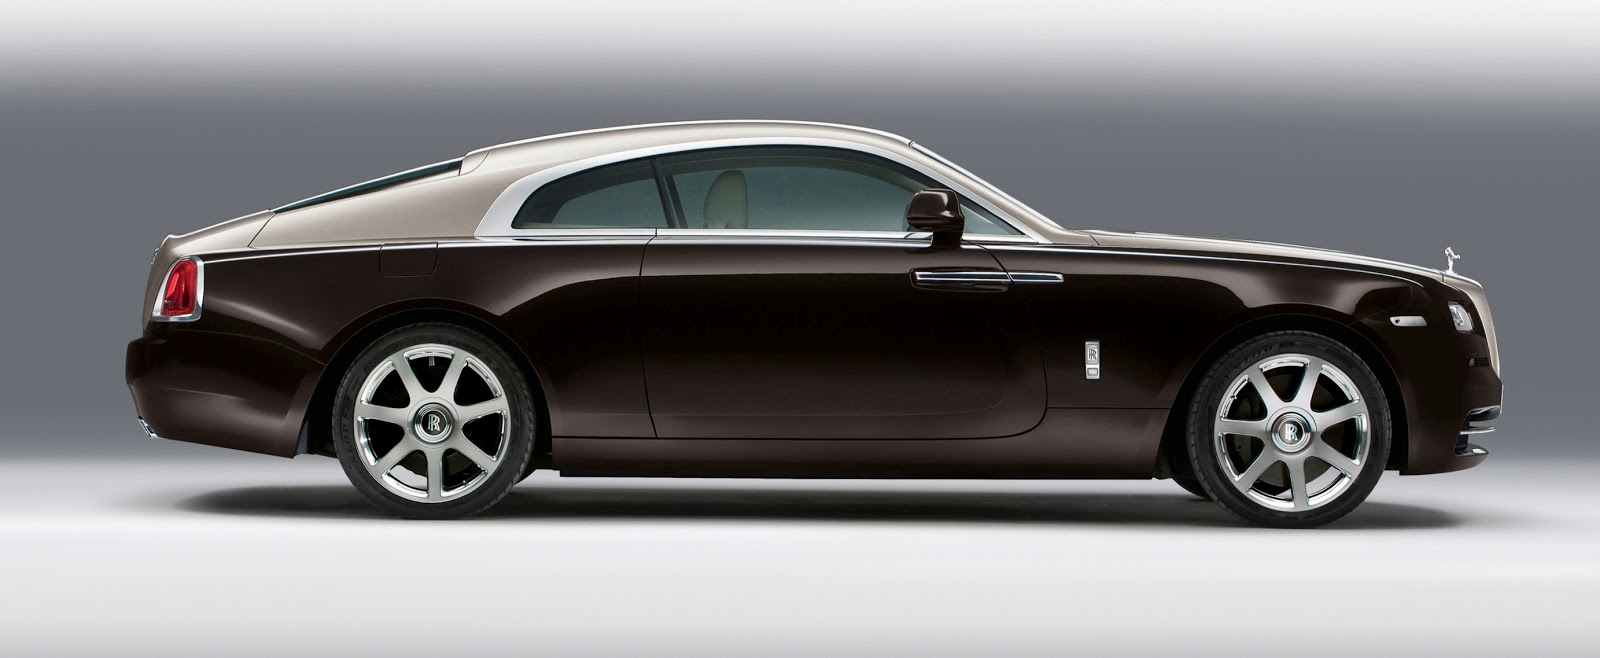 Take Two Doors Off The Rolls Royce Ghost And You Get New Wraith Fast Back Coupe 320 000 Is Ed By A Mive V12 Gracefully